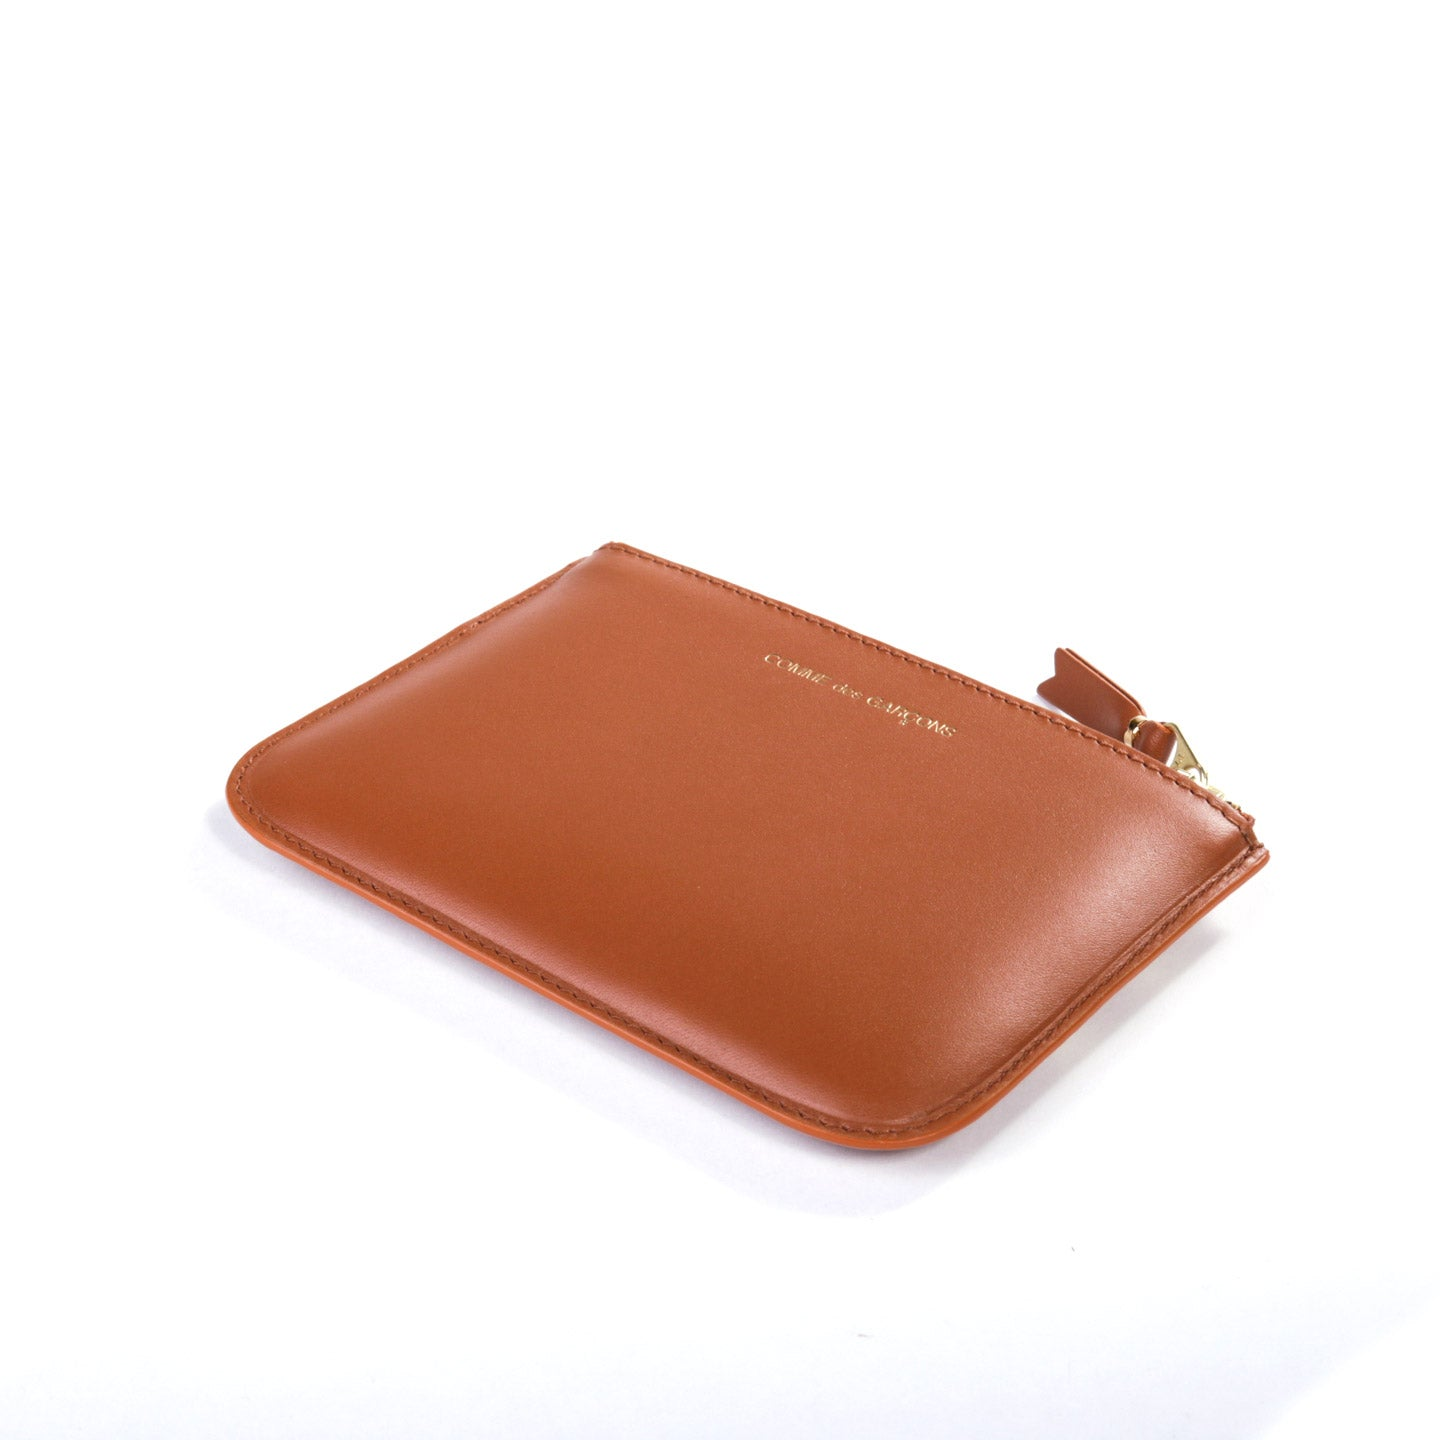 COMME DES GARCONS SA8100 RUBY EYES ZIP WALLET BROWN